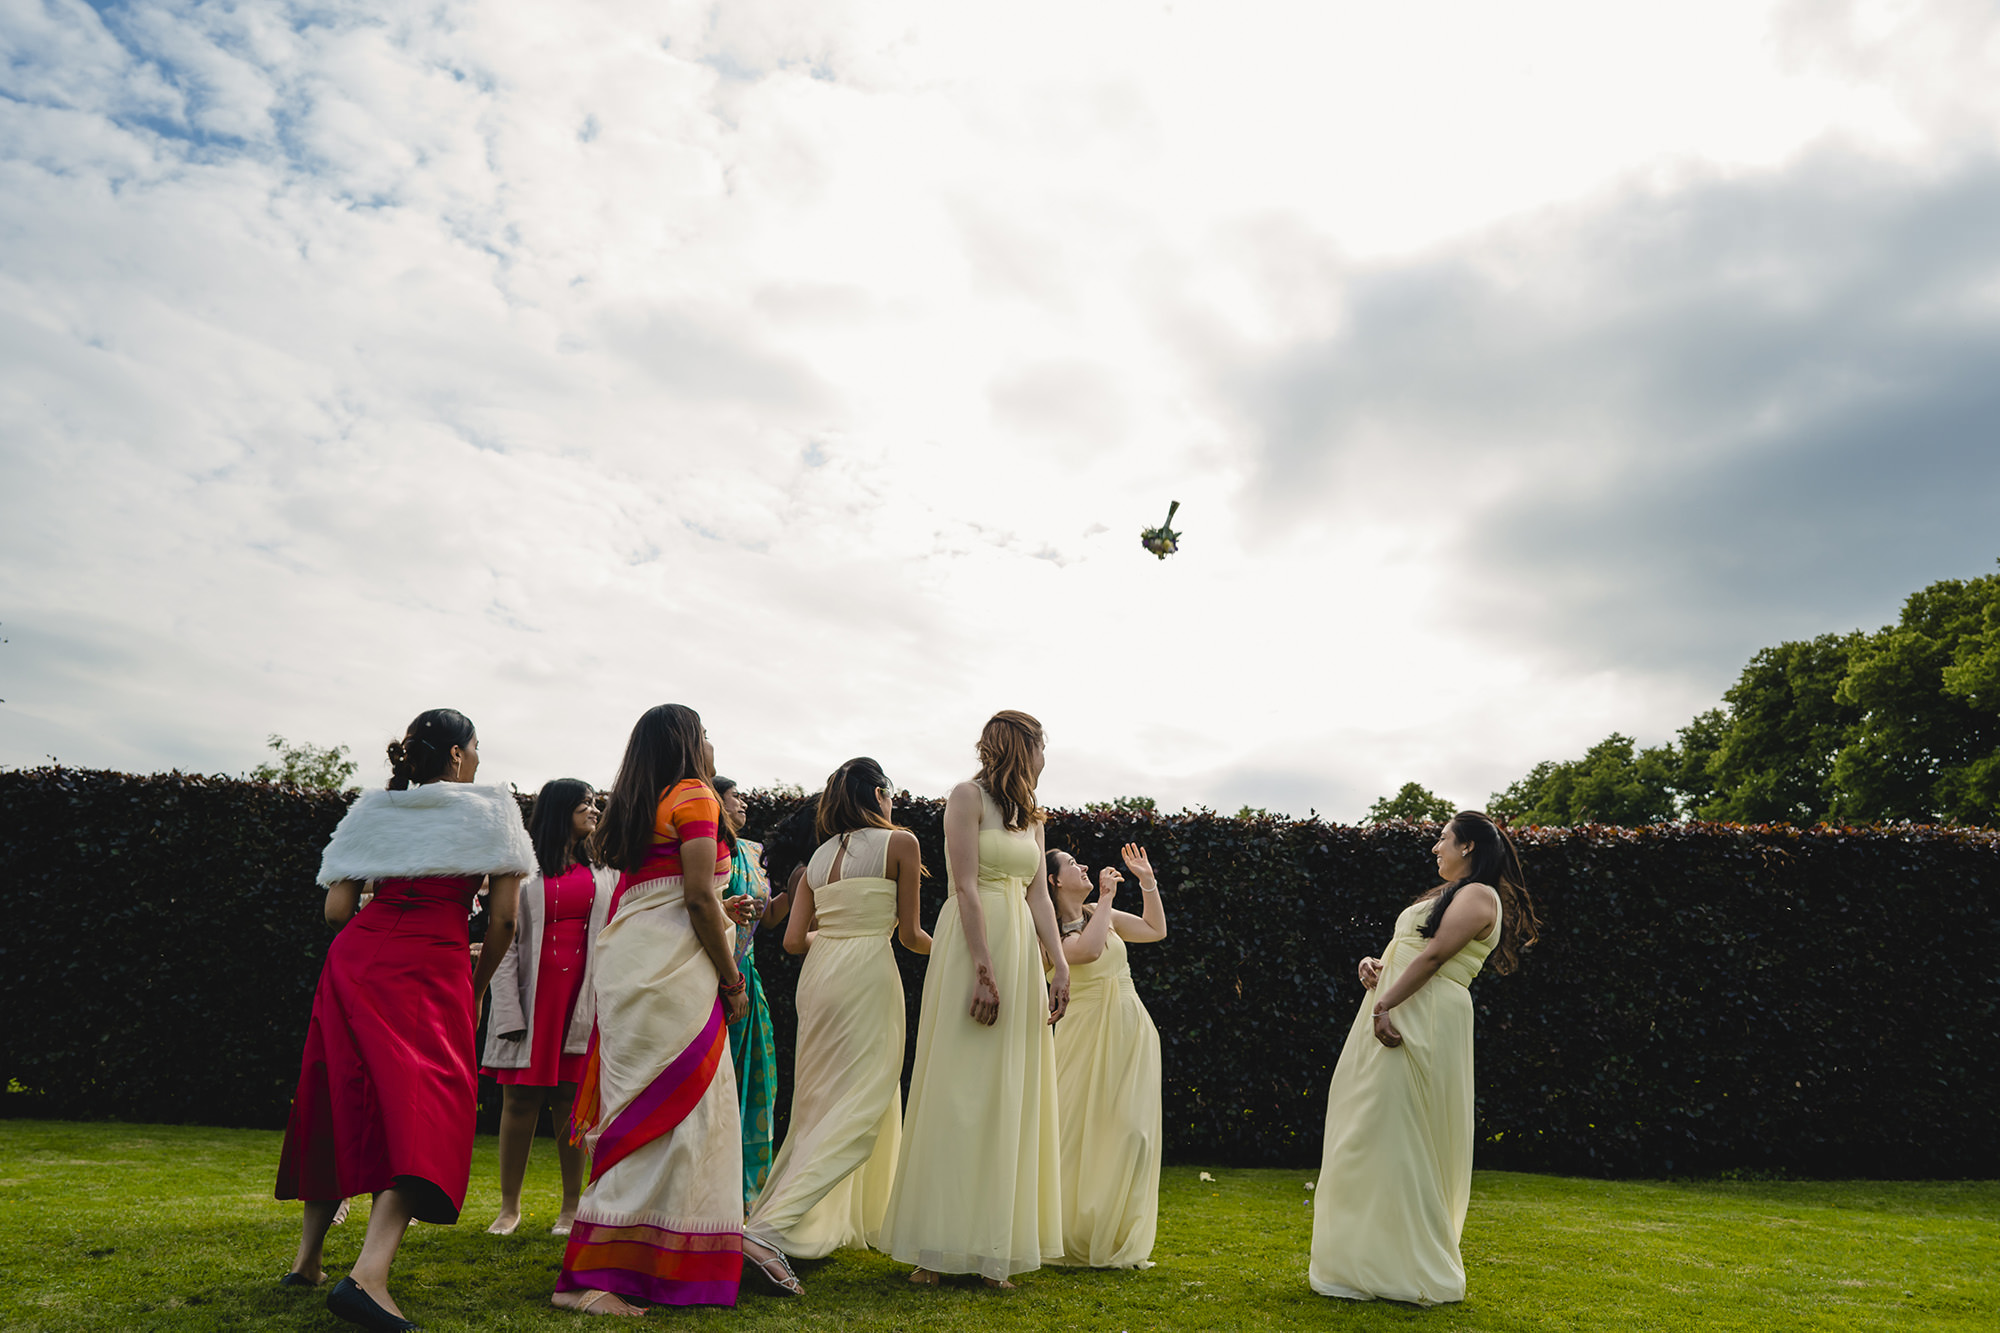 bouquet throw at the end of the wedding at poundon house